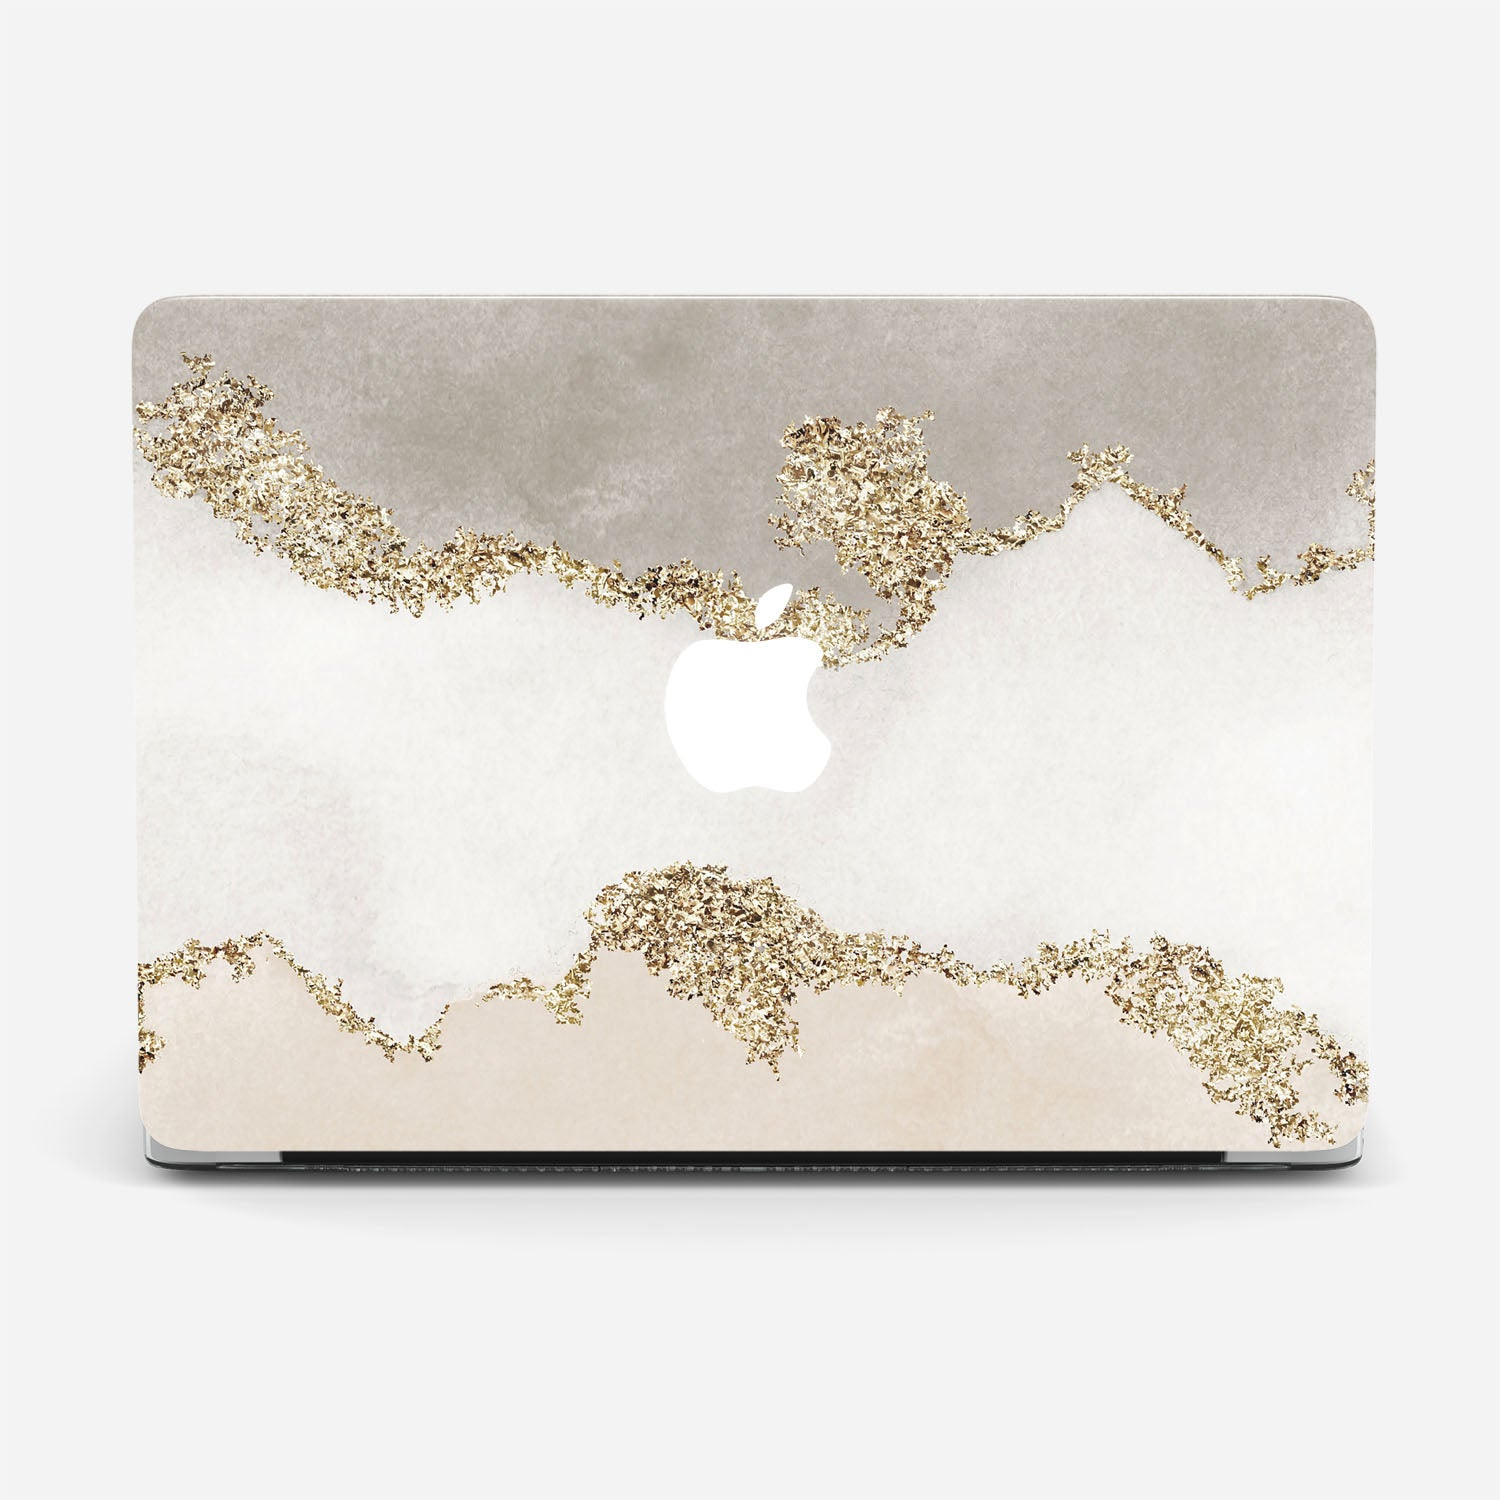 GOLDEN COAST Macbook Air skins 13 inch | Pigtou